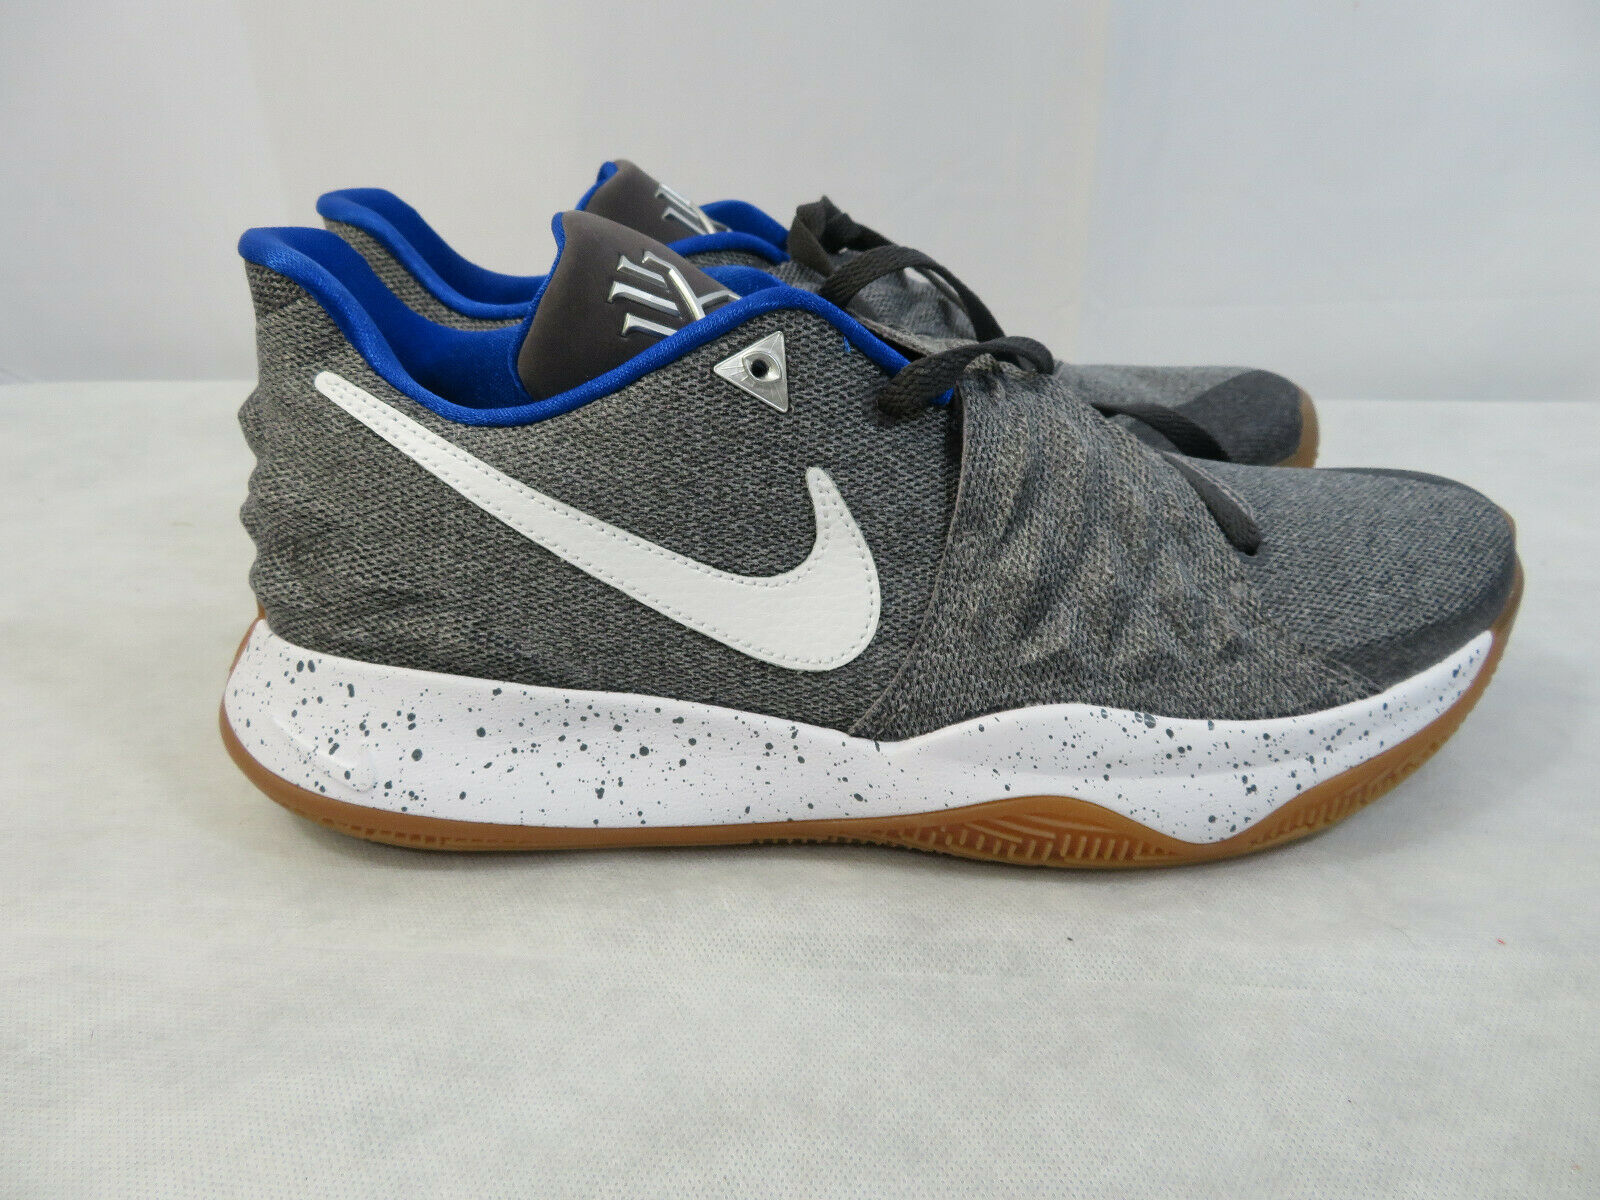 Nike Kyrie Low 1 Uncle Drew QS Basketball Grey White AO8979-005 Size 8.5 New